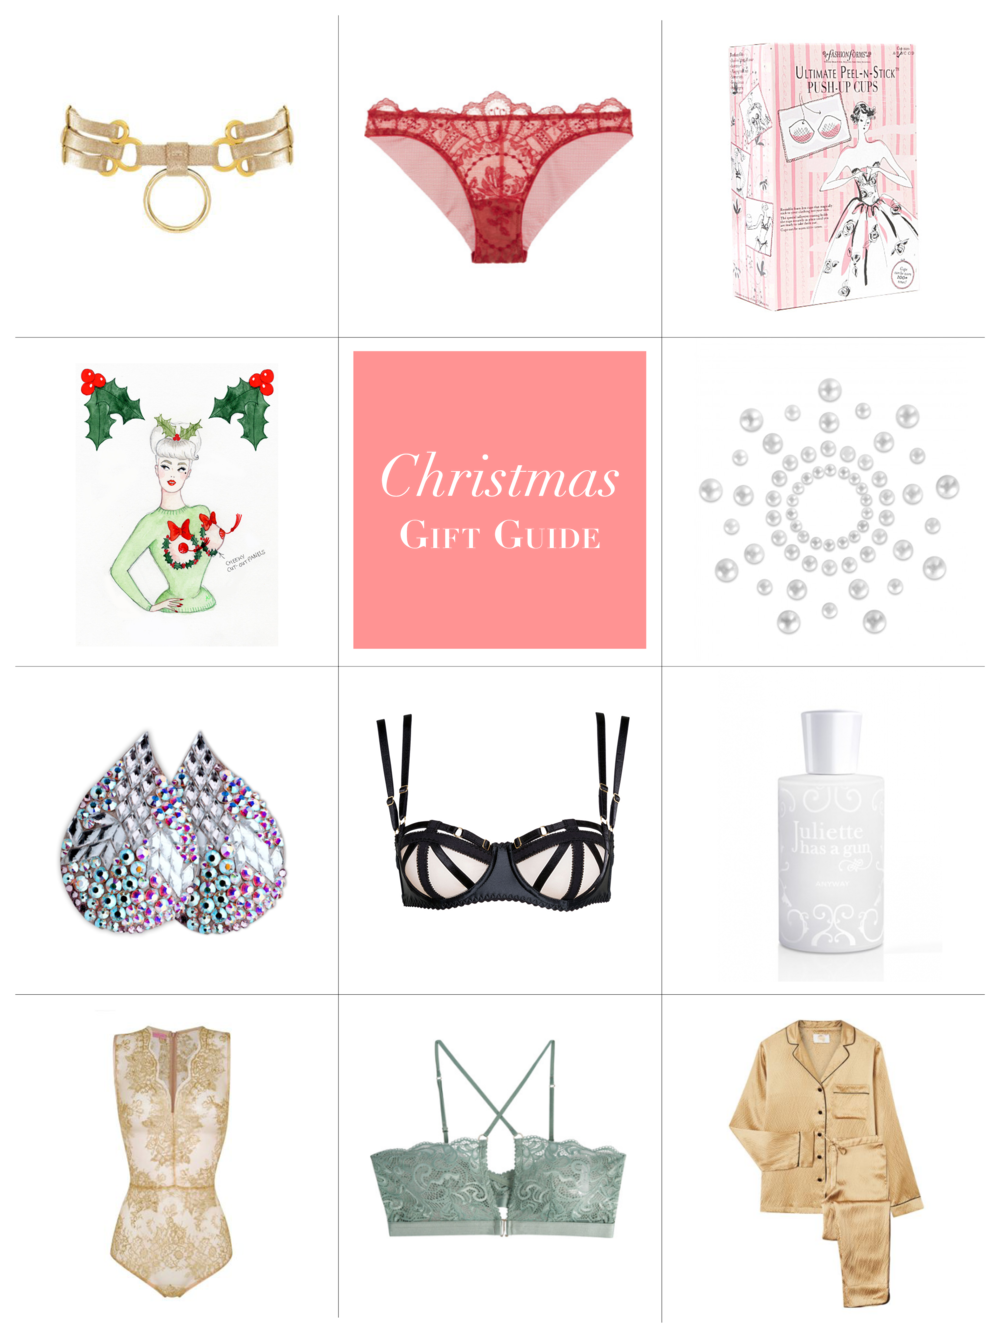 Lingerie-la-femme-valentines-day-gift-guide-lingerie-featured.png